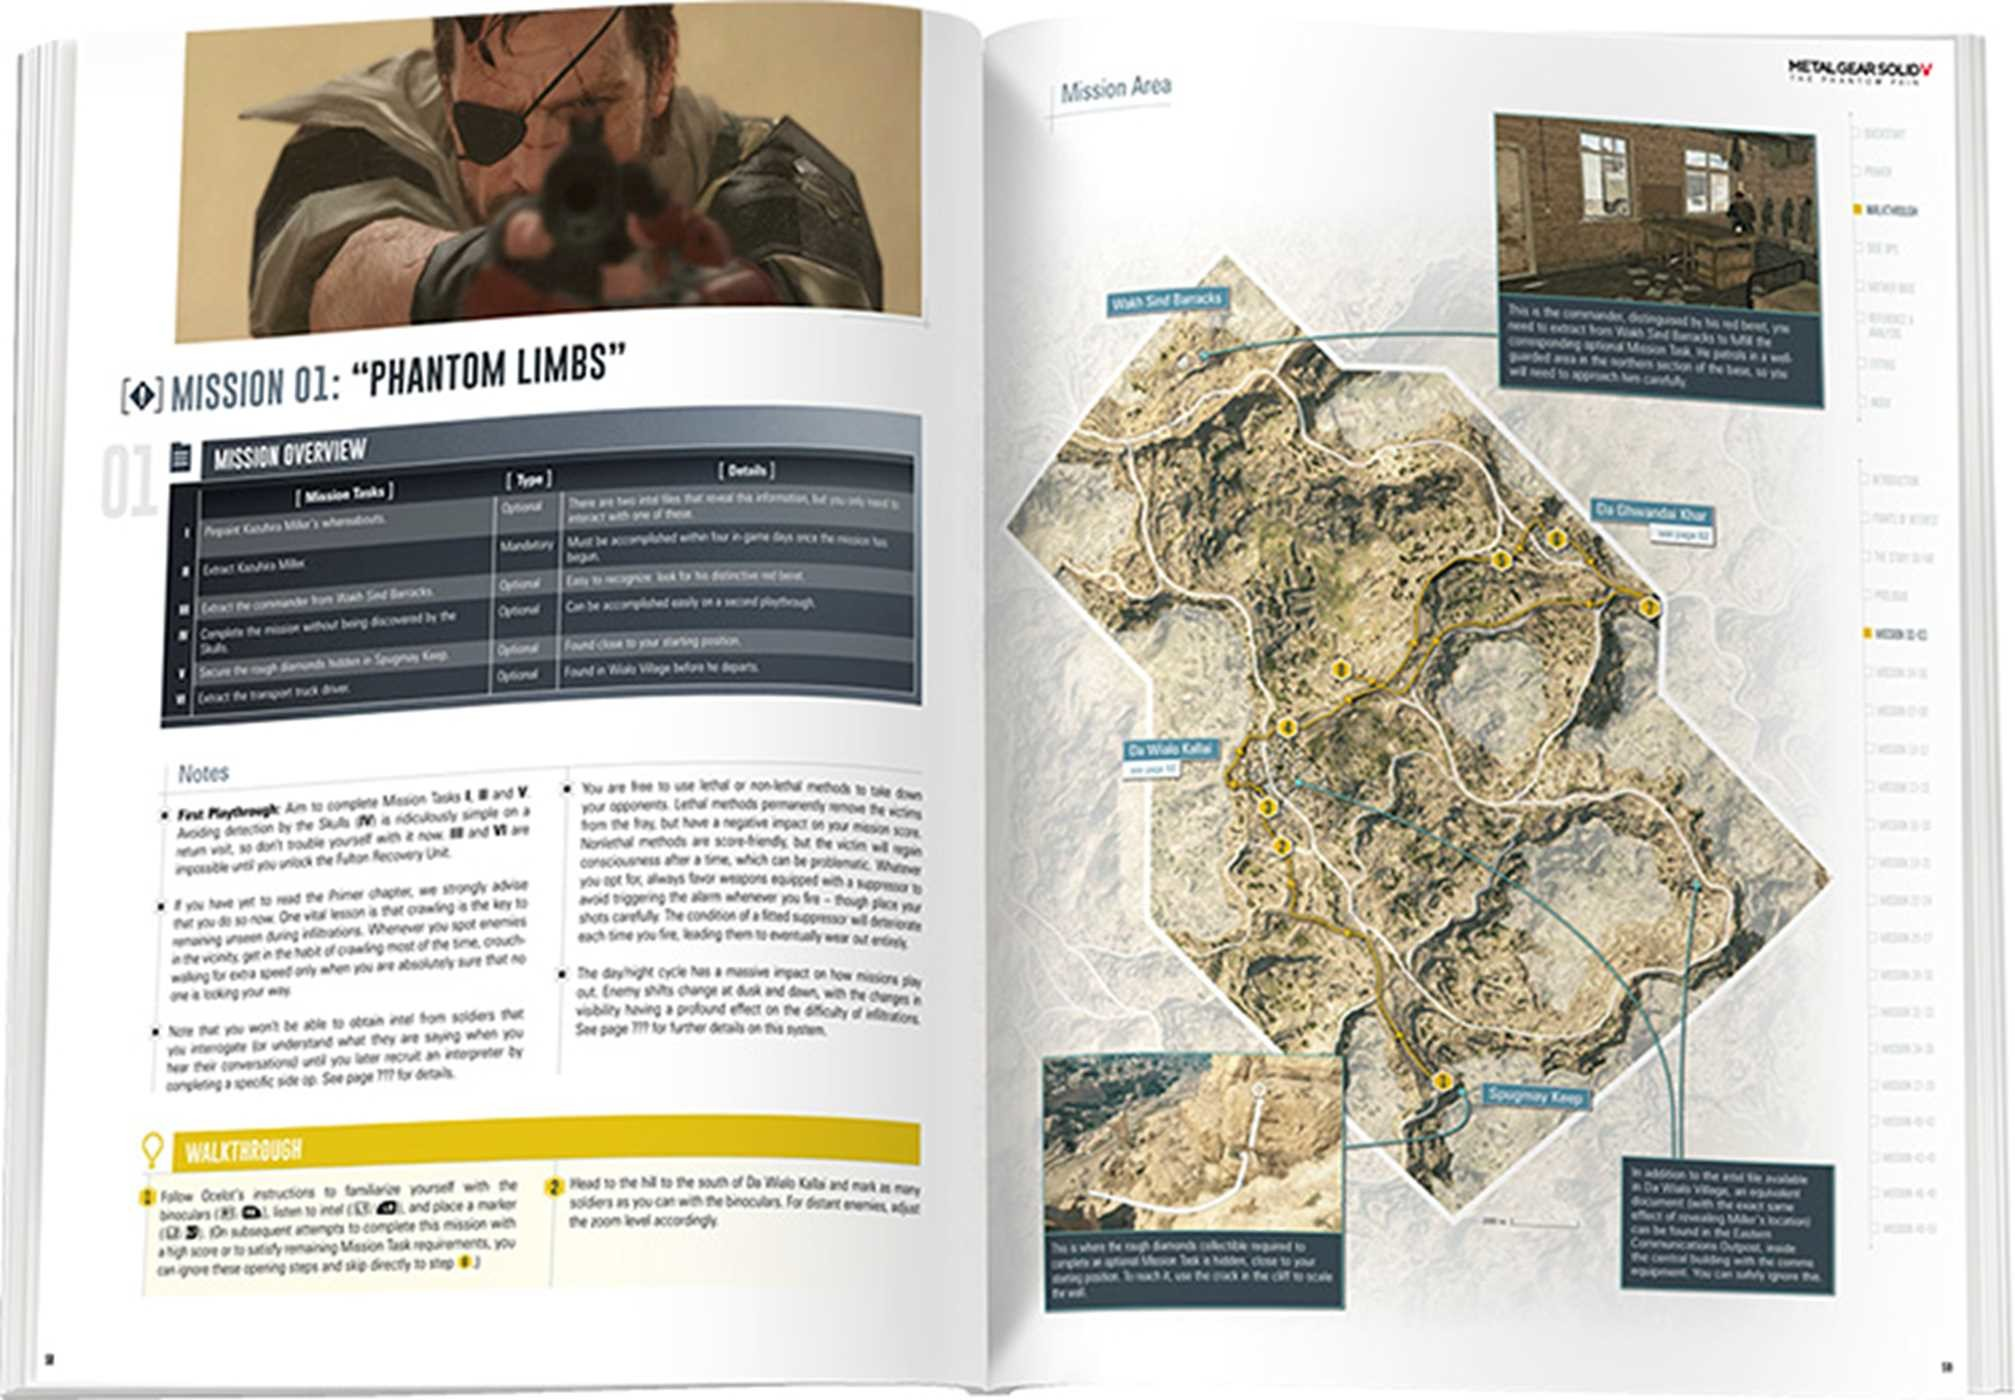 metal gear solid v the phantom pain guide ebook